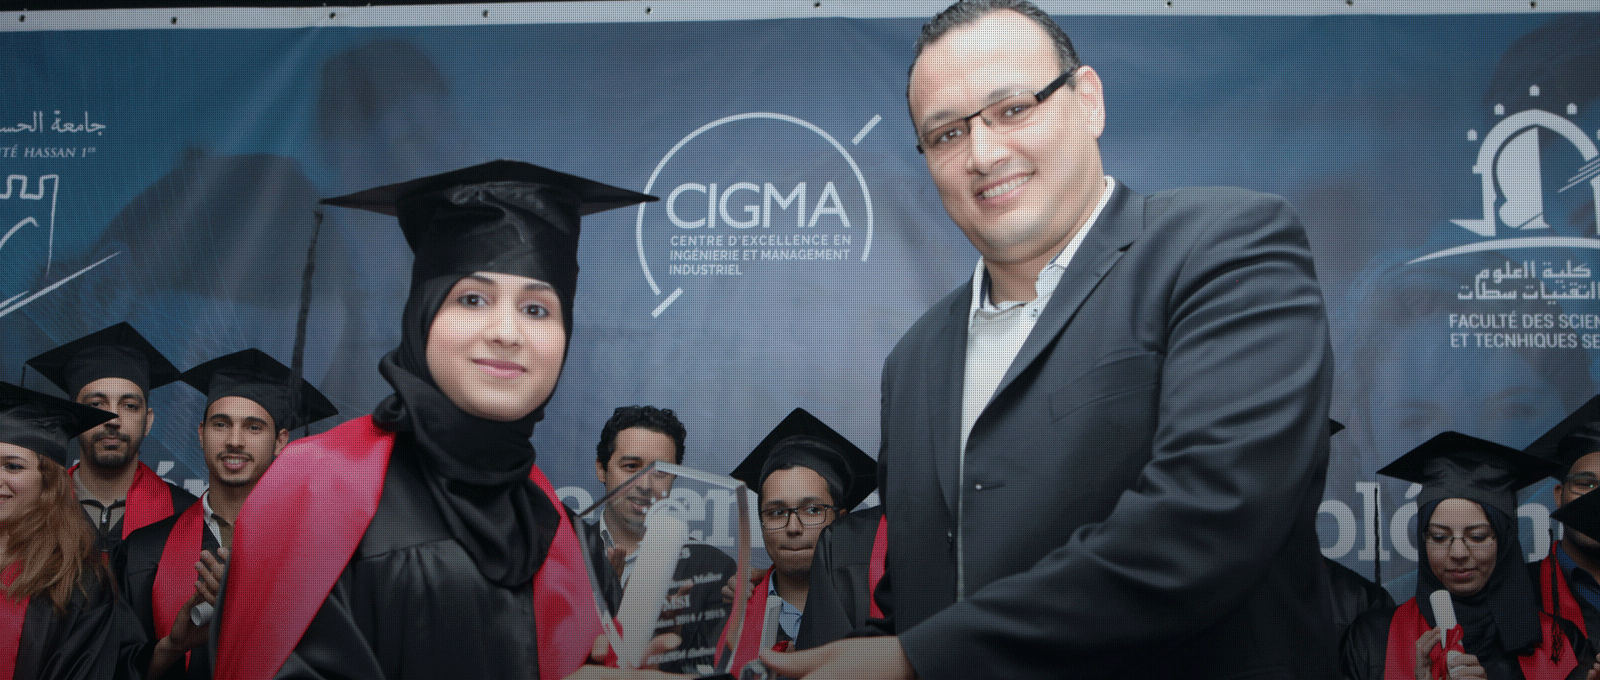 cigma_remise_des_diplomes_master_msi